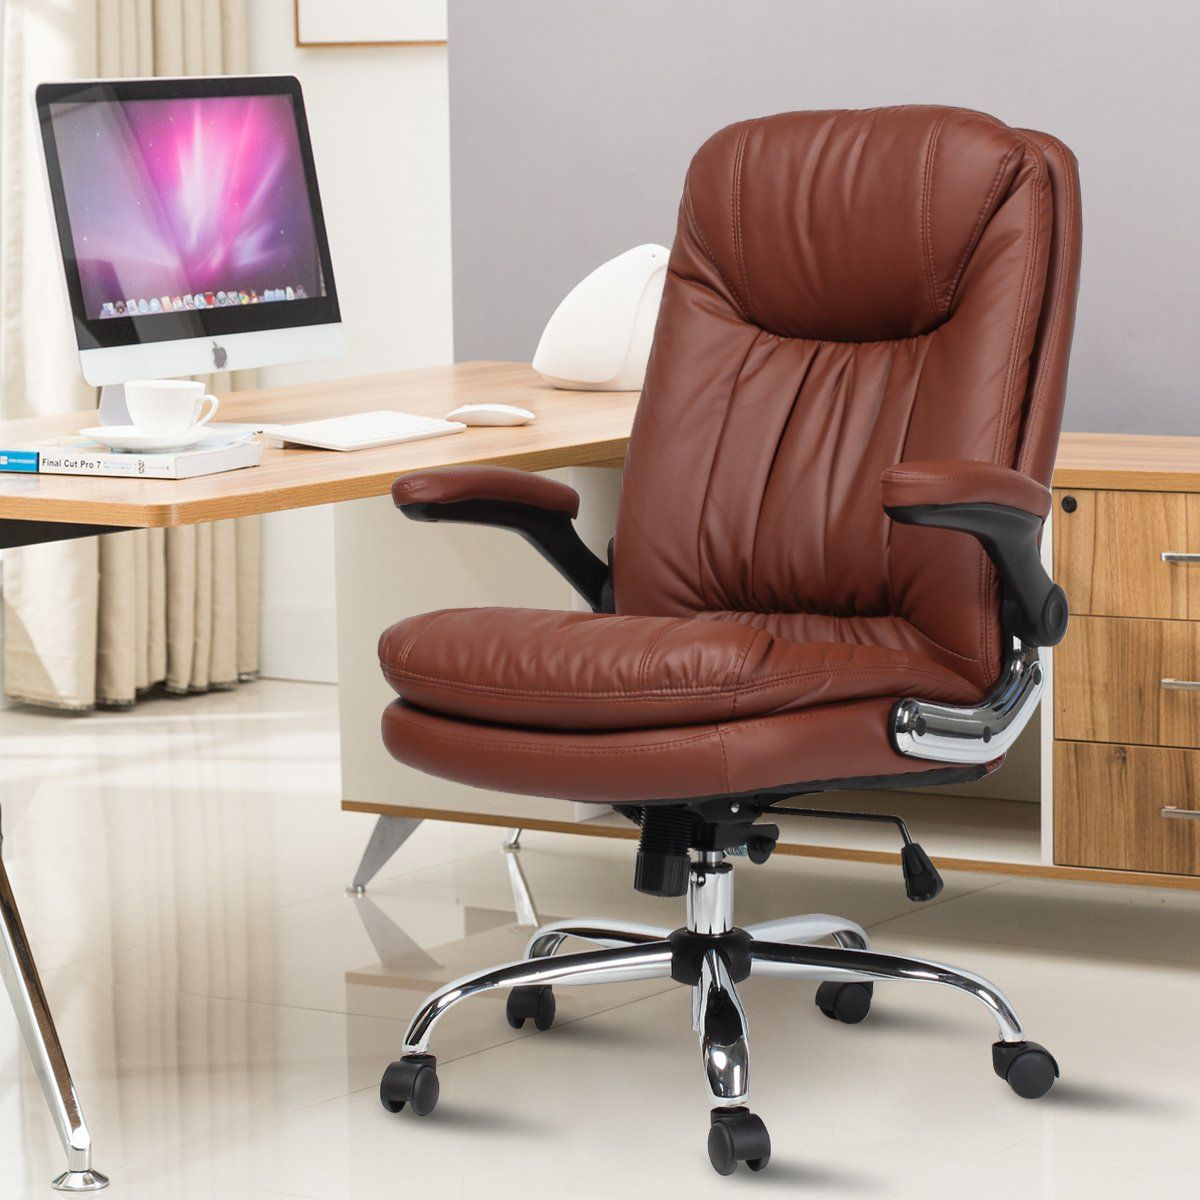 Ergonomic Office Desk Chairs Computer Gaming Chair Pu Leather Chair Brown Executive Computer Chair S In 2020